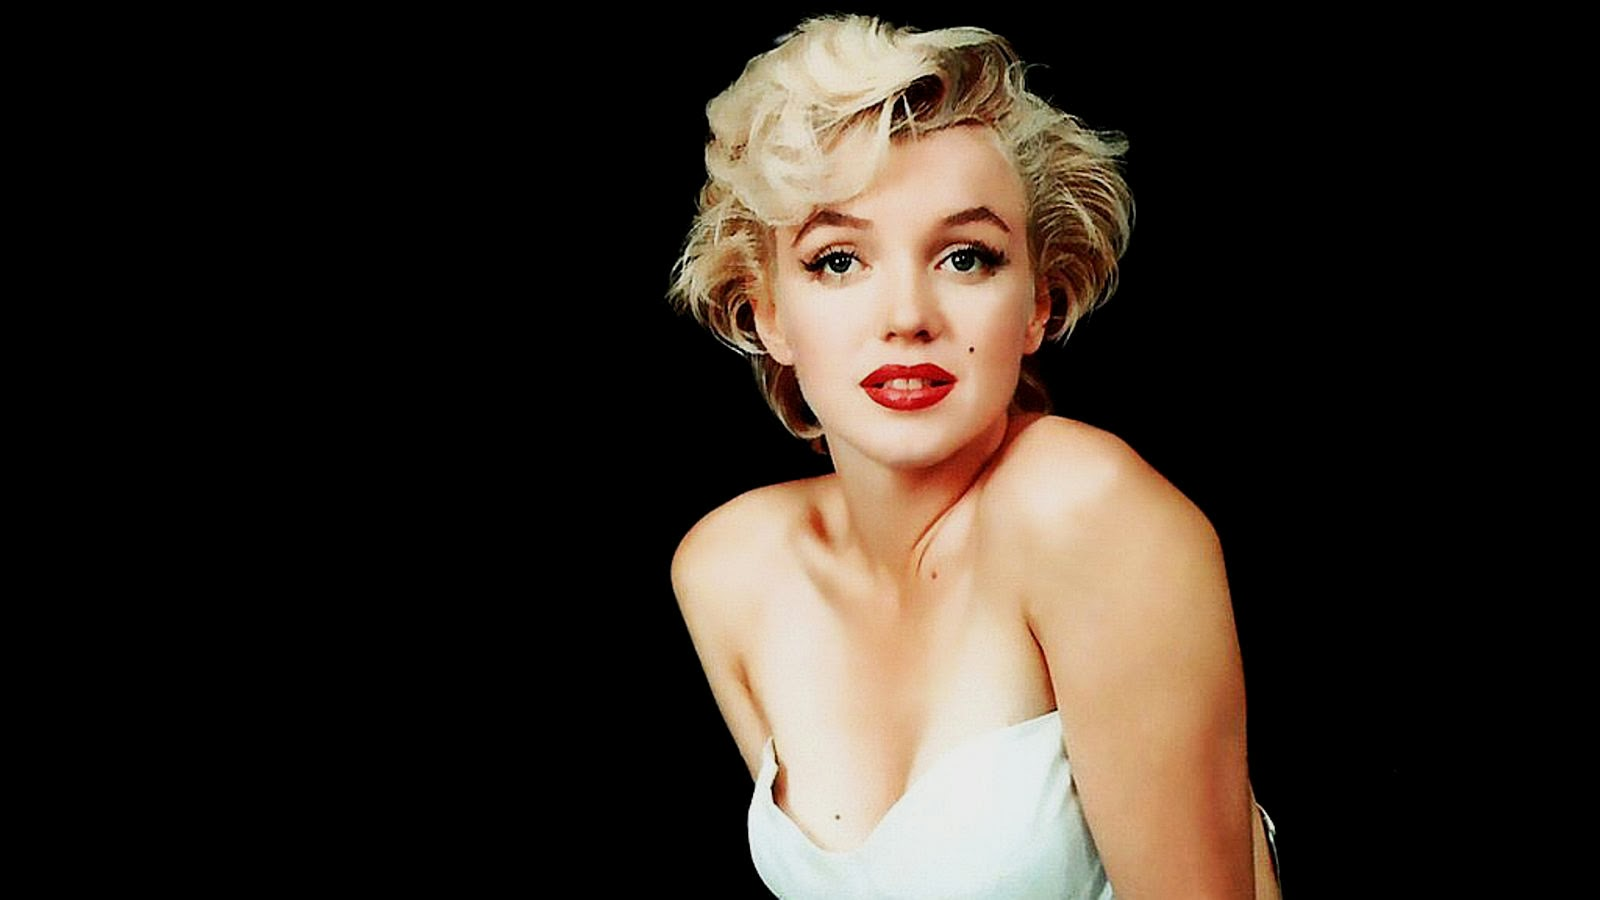 Marilyn Monroe, Free Stock Photos - Free Stock Photos